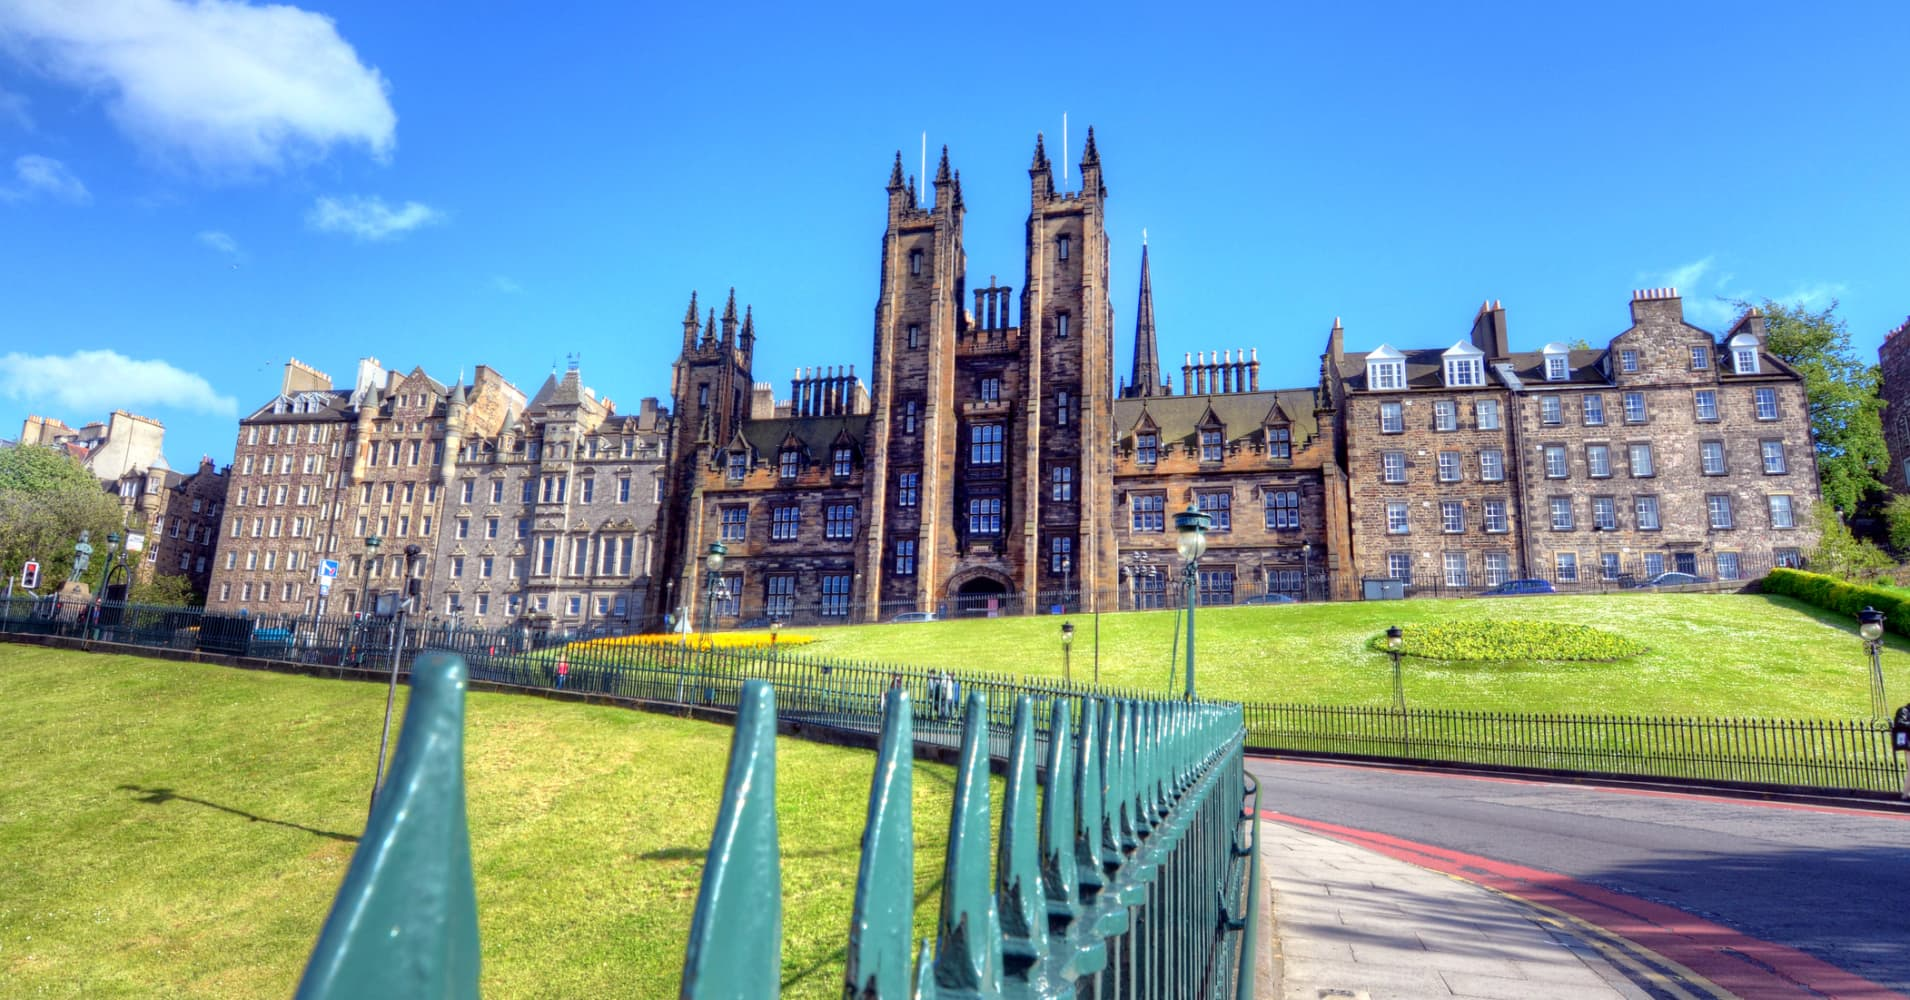 Leading university to divest from fossil fuels as it aims to go carbon neutral